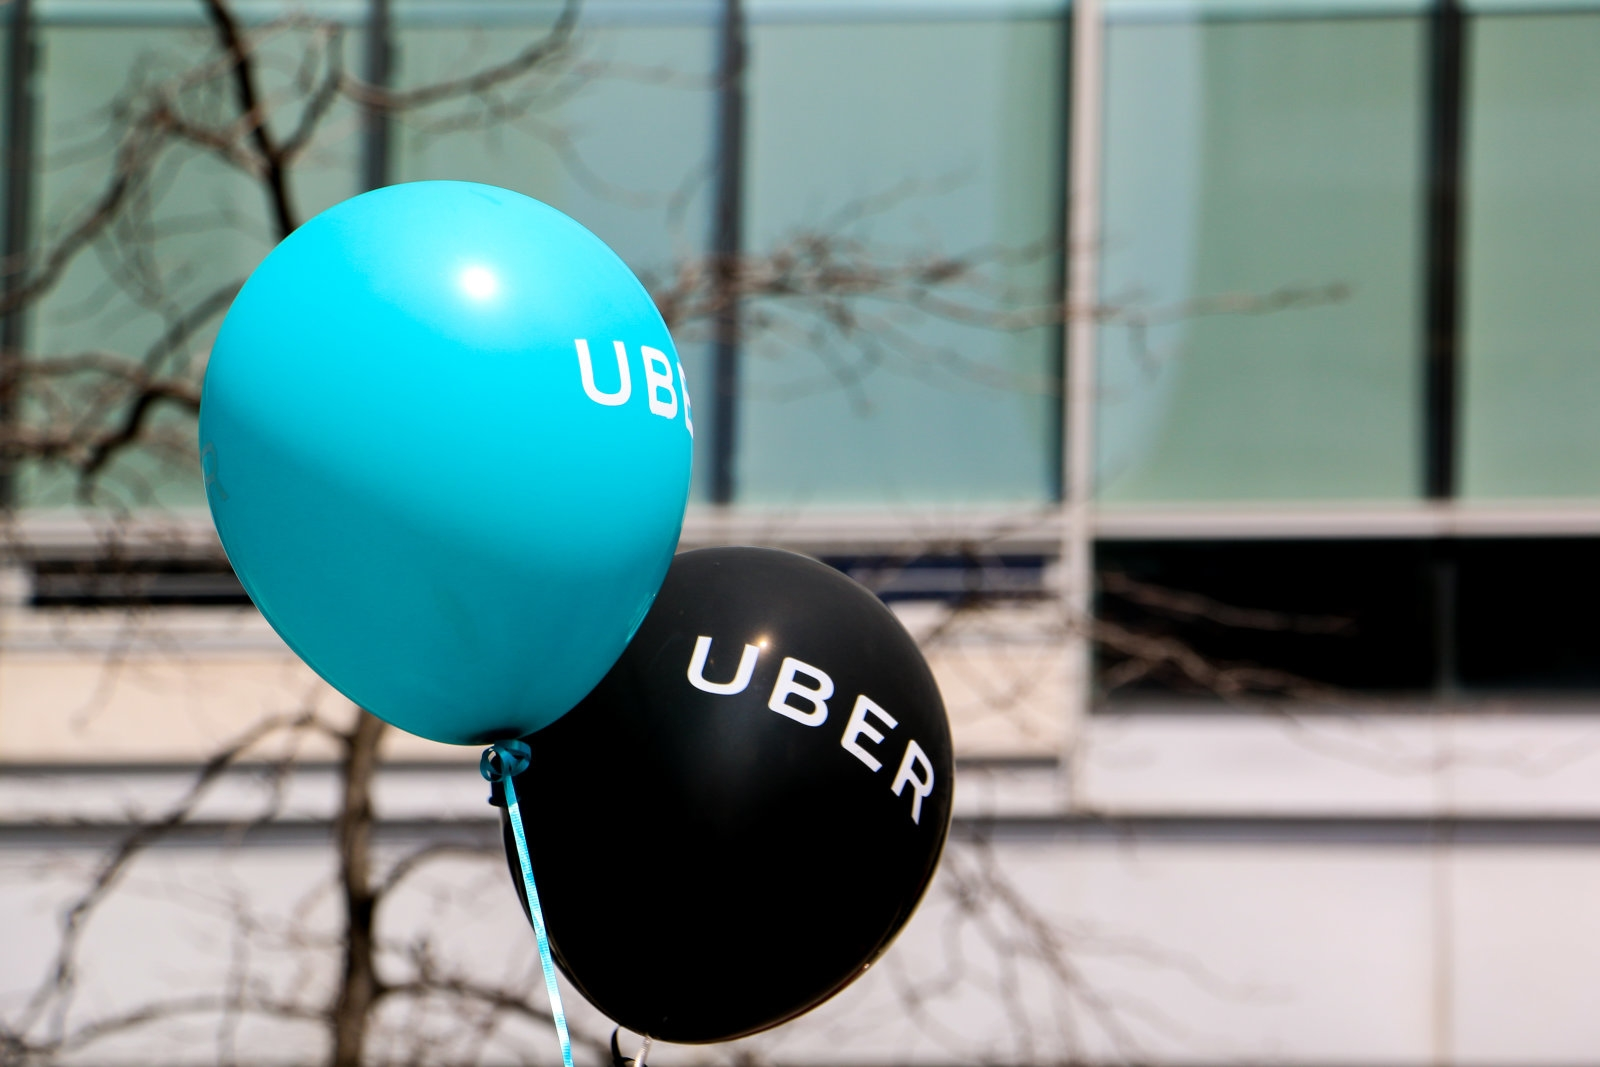 Uber hopes to win back London with a 24/7 helpline | DeviceDaily.com